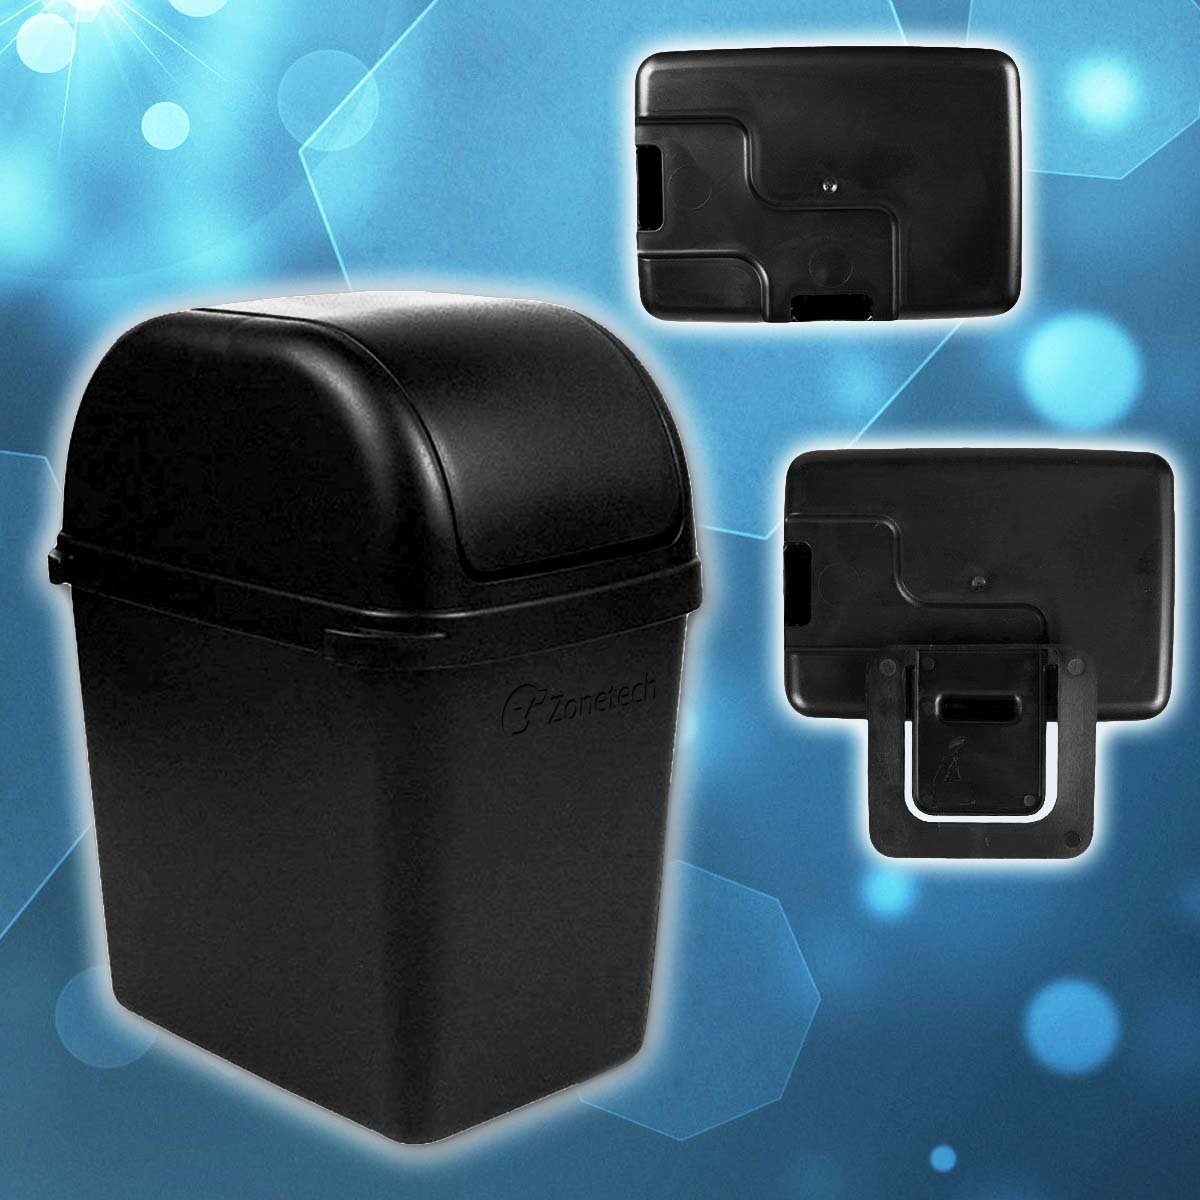 Classic Black Premium Quality Black Universal Traveling Portable Car Trash Can Comfort Wheels GC0011 Zone Tech Portable Mini Car Garbage Can with Latch Grip